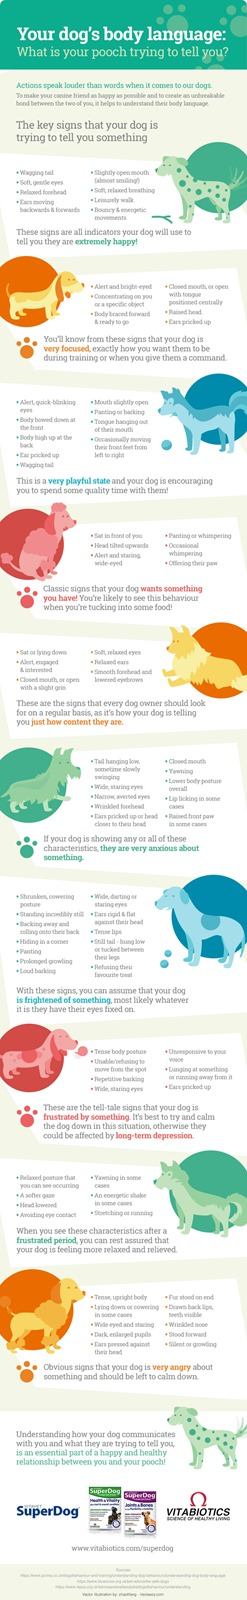 Vitabiotics Dog Body Language Infographic